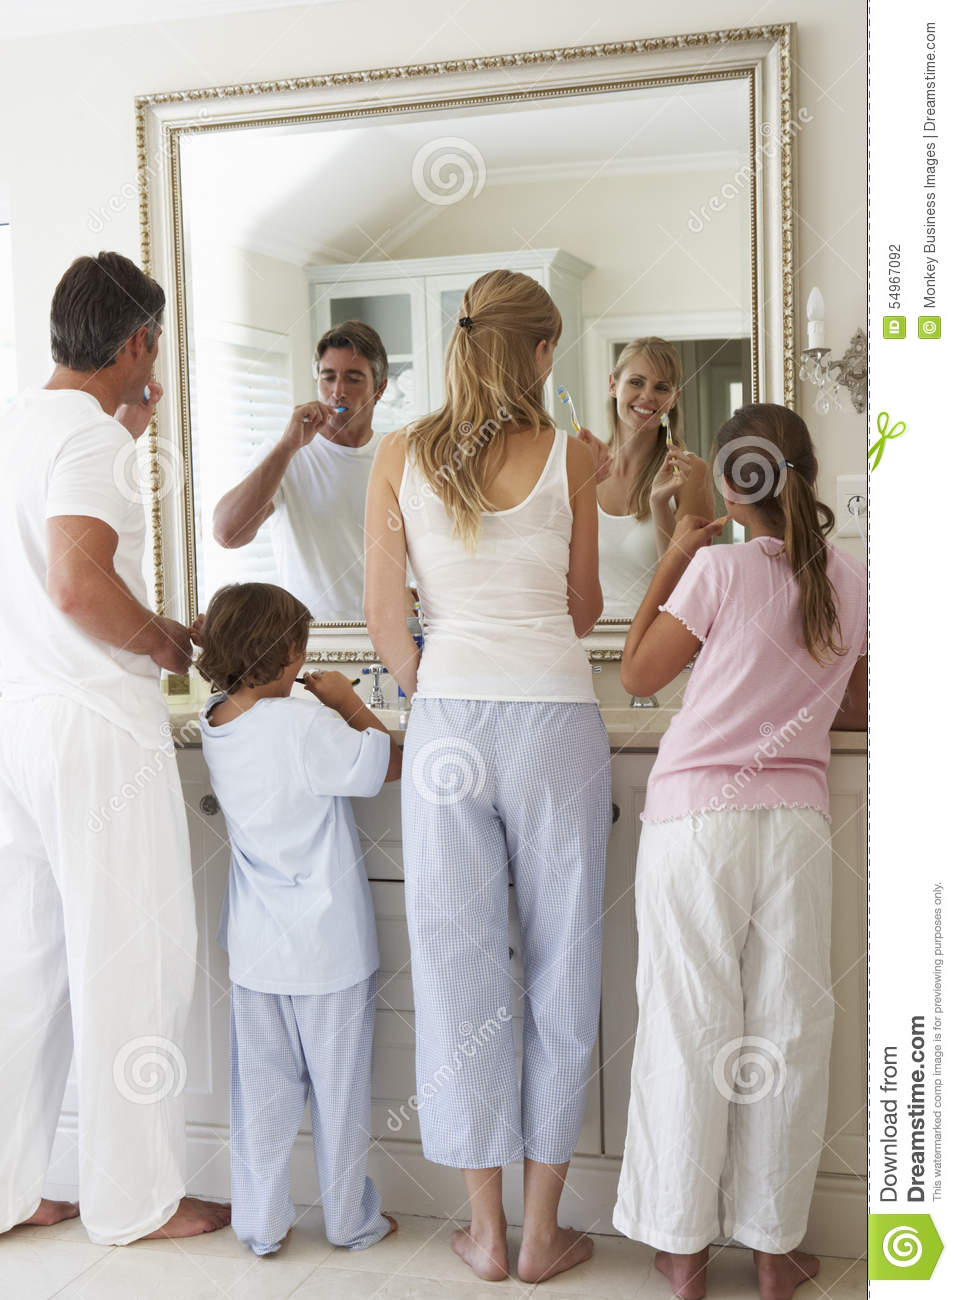 Family Brushing Teeth In Bathroom Mirror Stock Photo